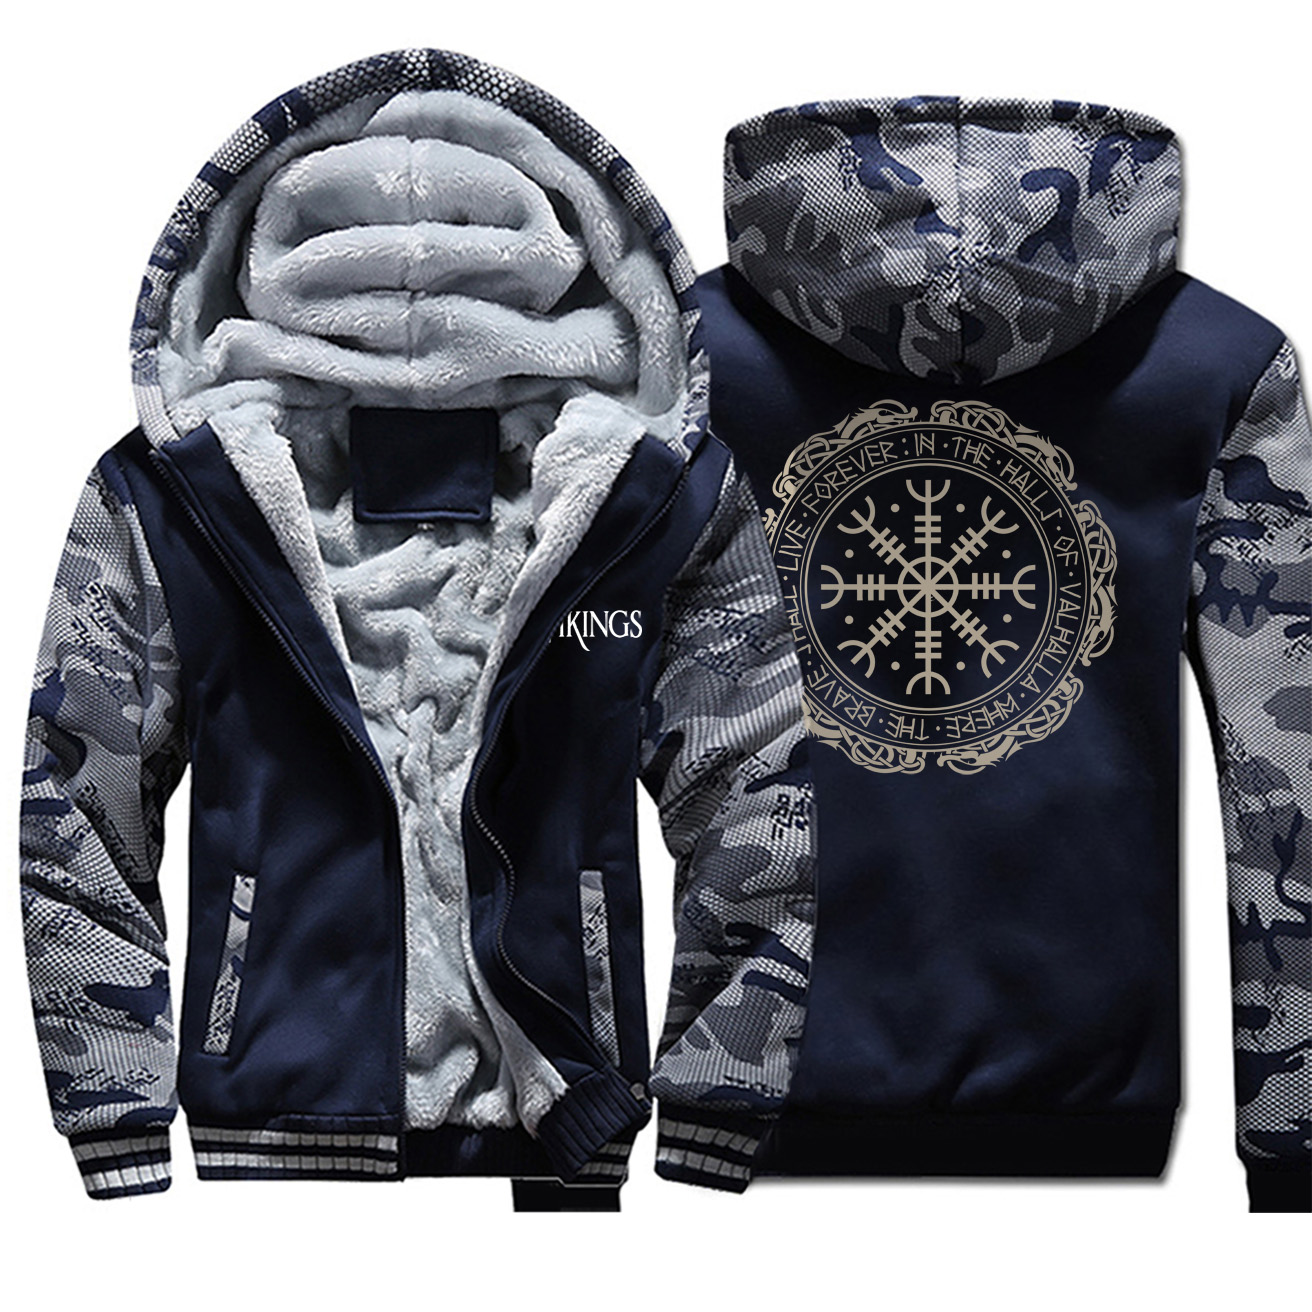 2019 Winter Thick Mens Hoodies Viking Printing Male Jacket Hip Hop Brand Outwear Hot Sale Camouflage Sleeve Men's Jacket Casual 1